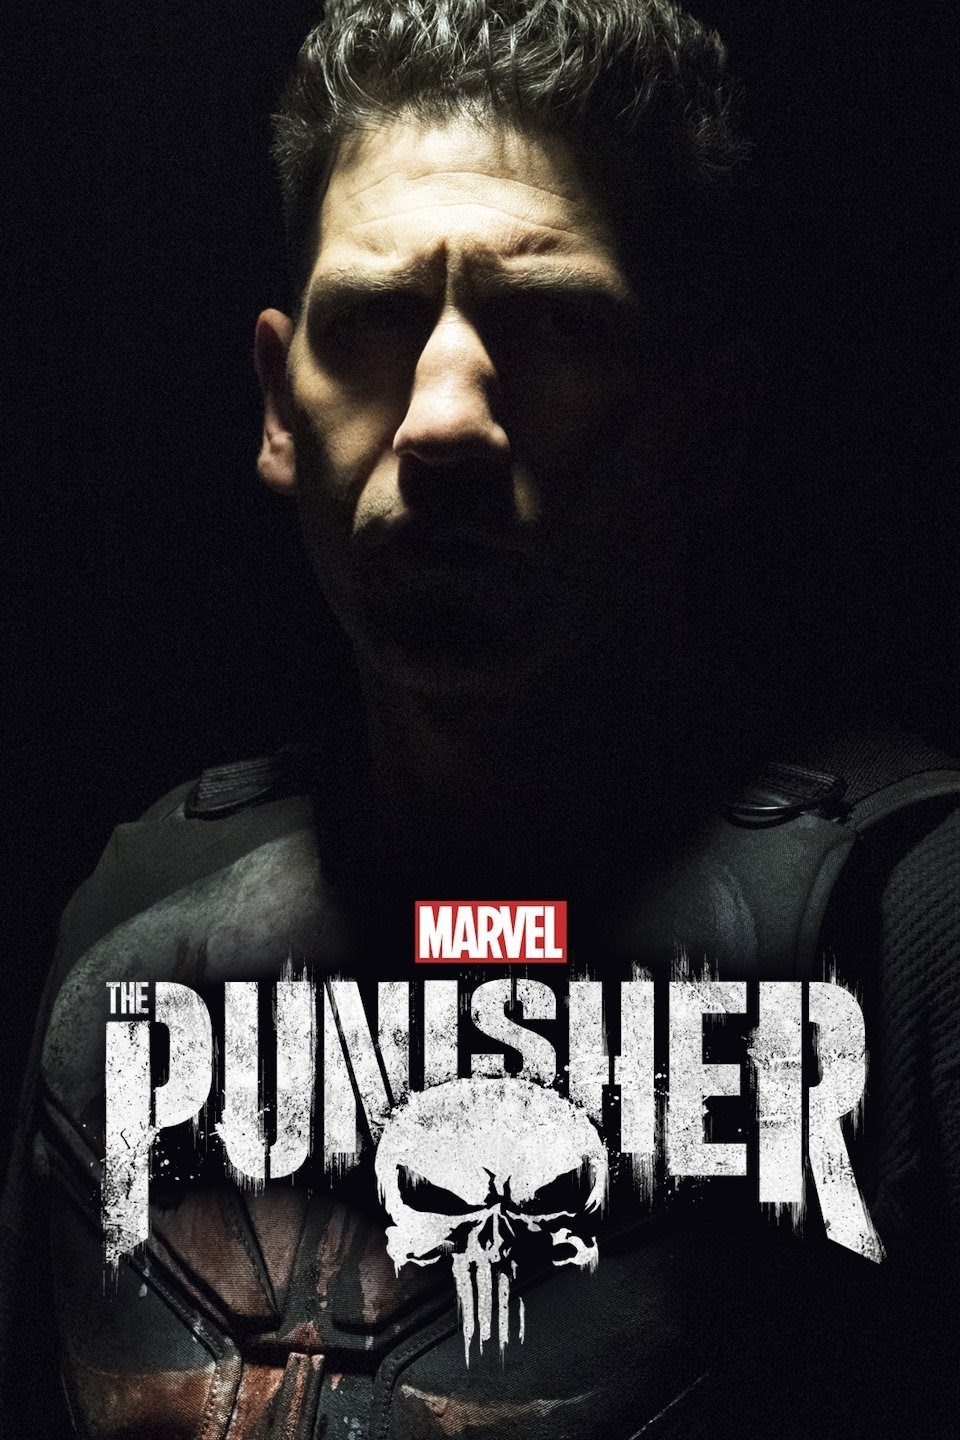 Marvel's The Punisher S01 E06 Cut